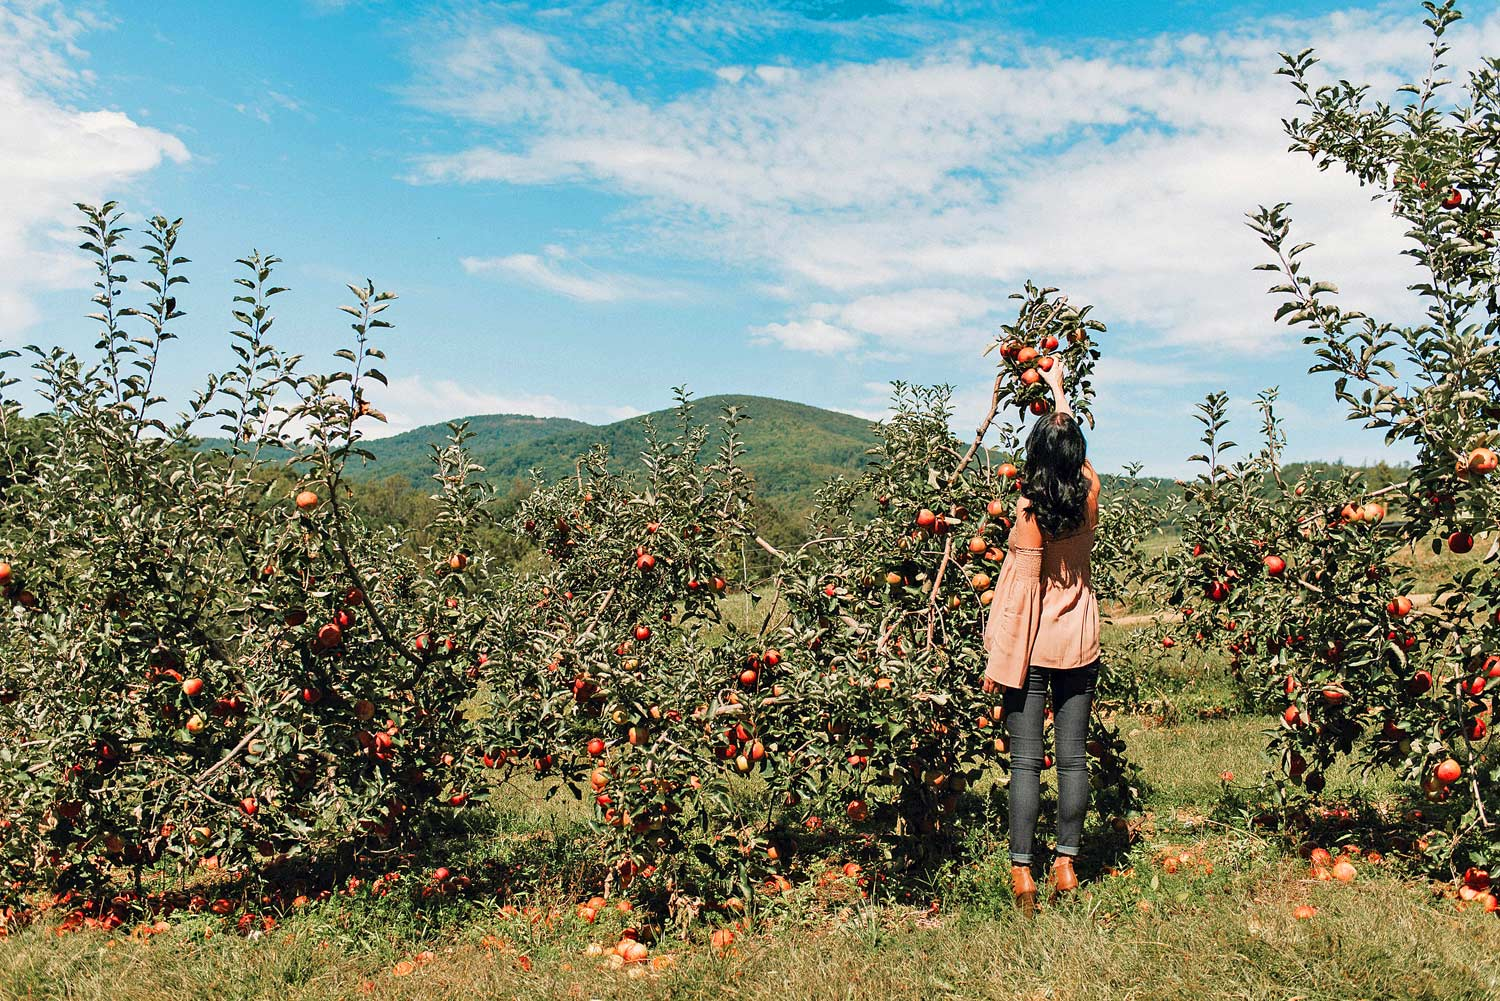 Apple Picking In Concord, NH